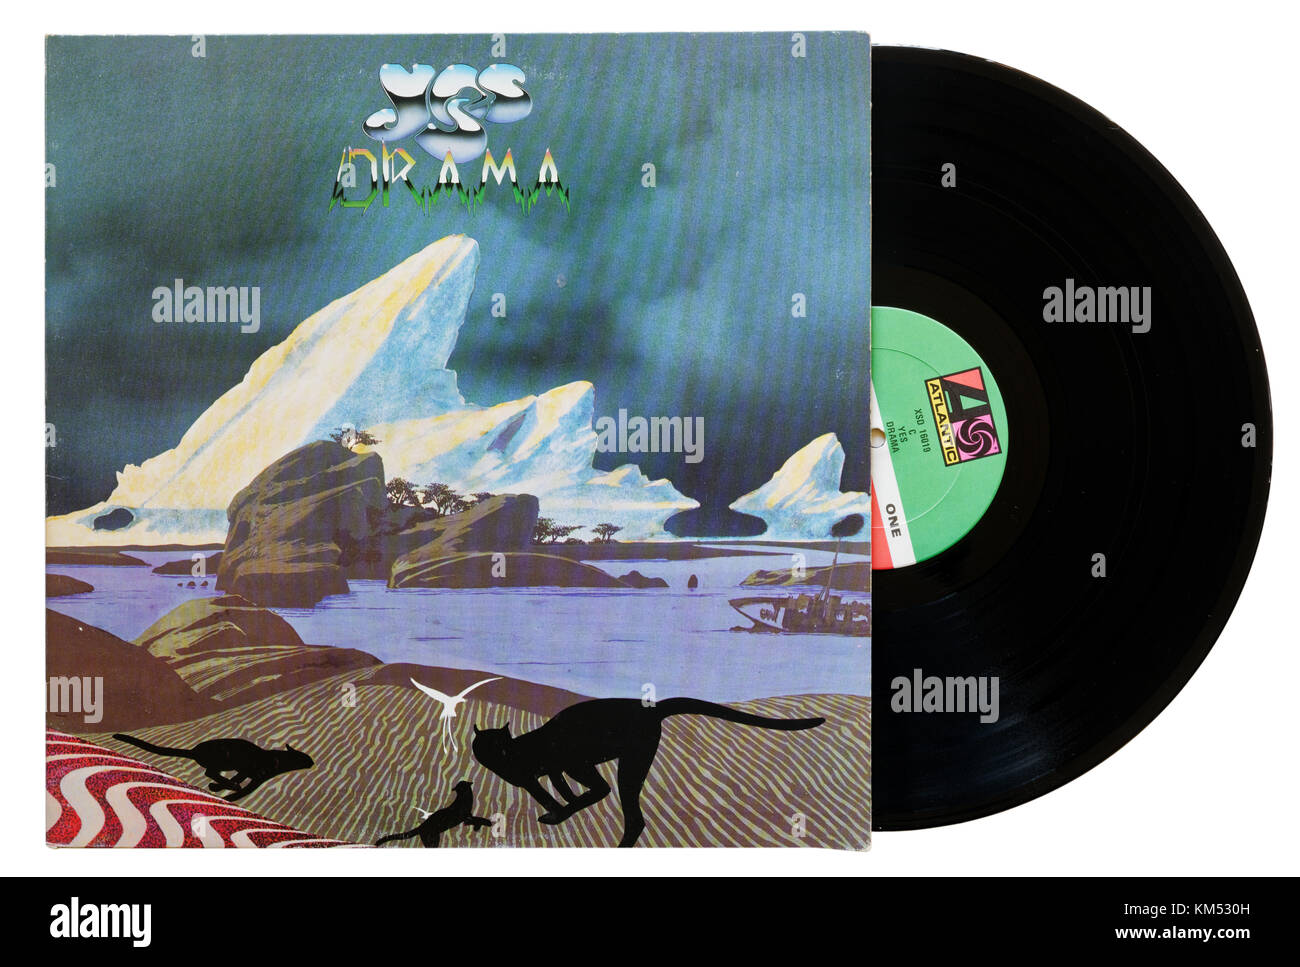 Yes Drama album - Stock Image